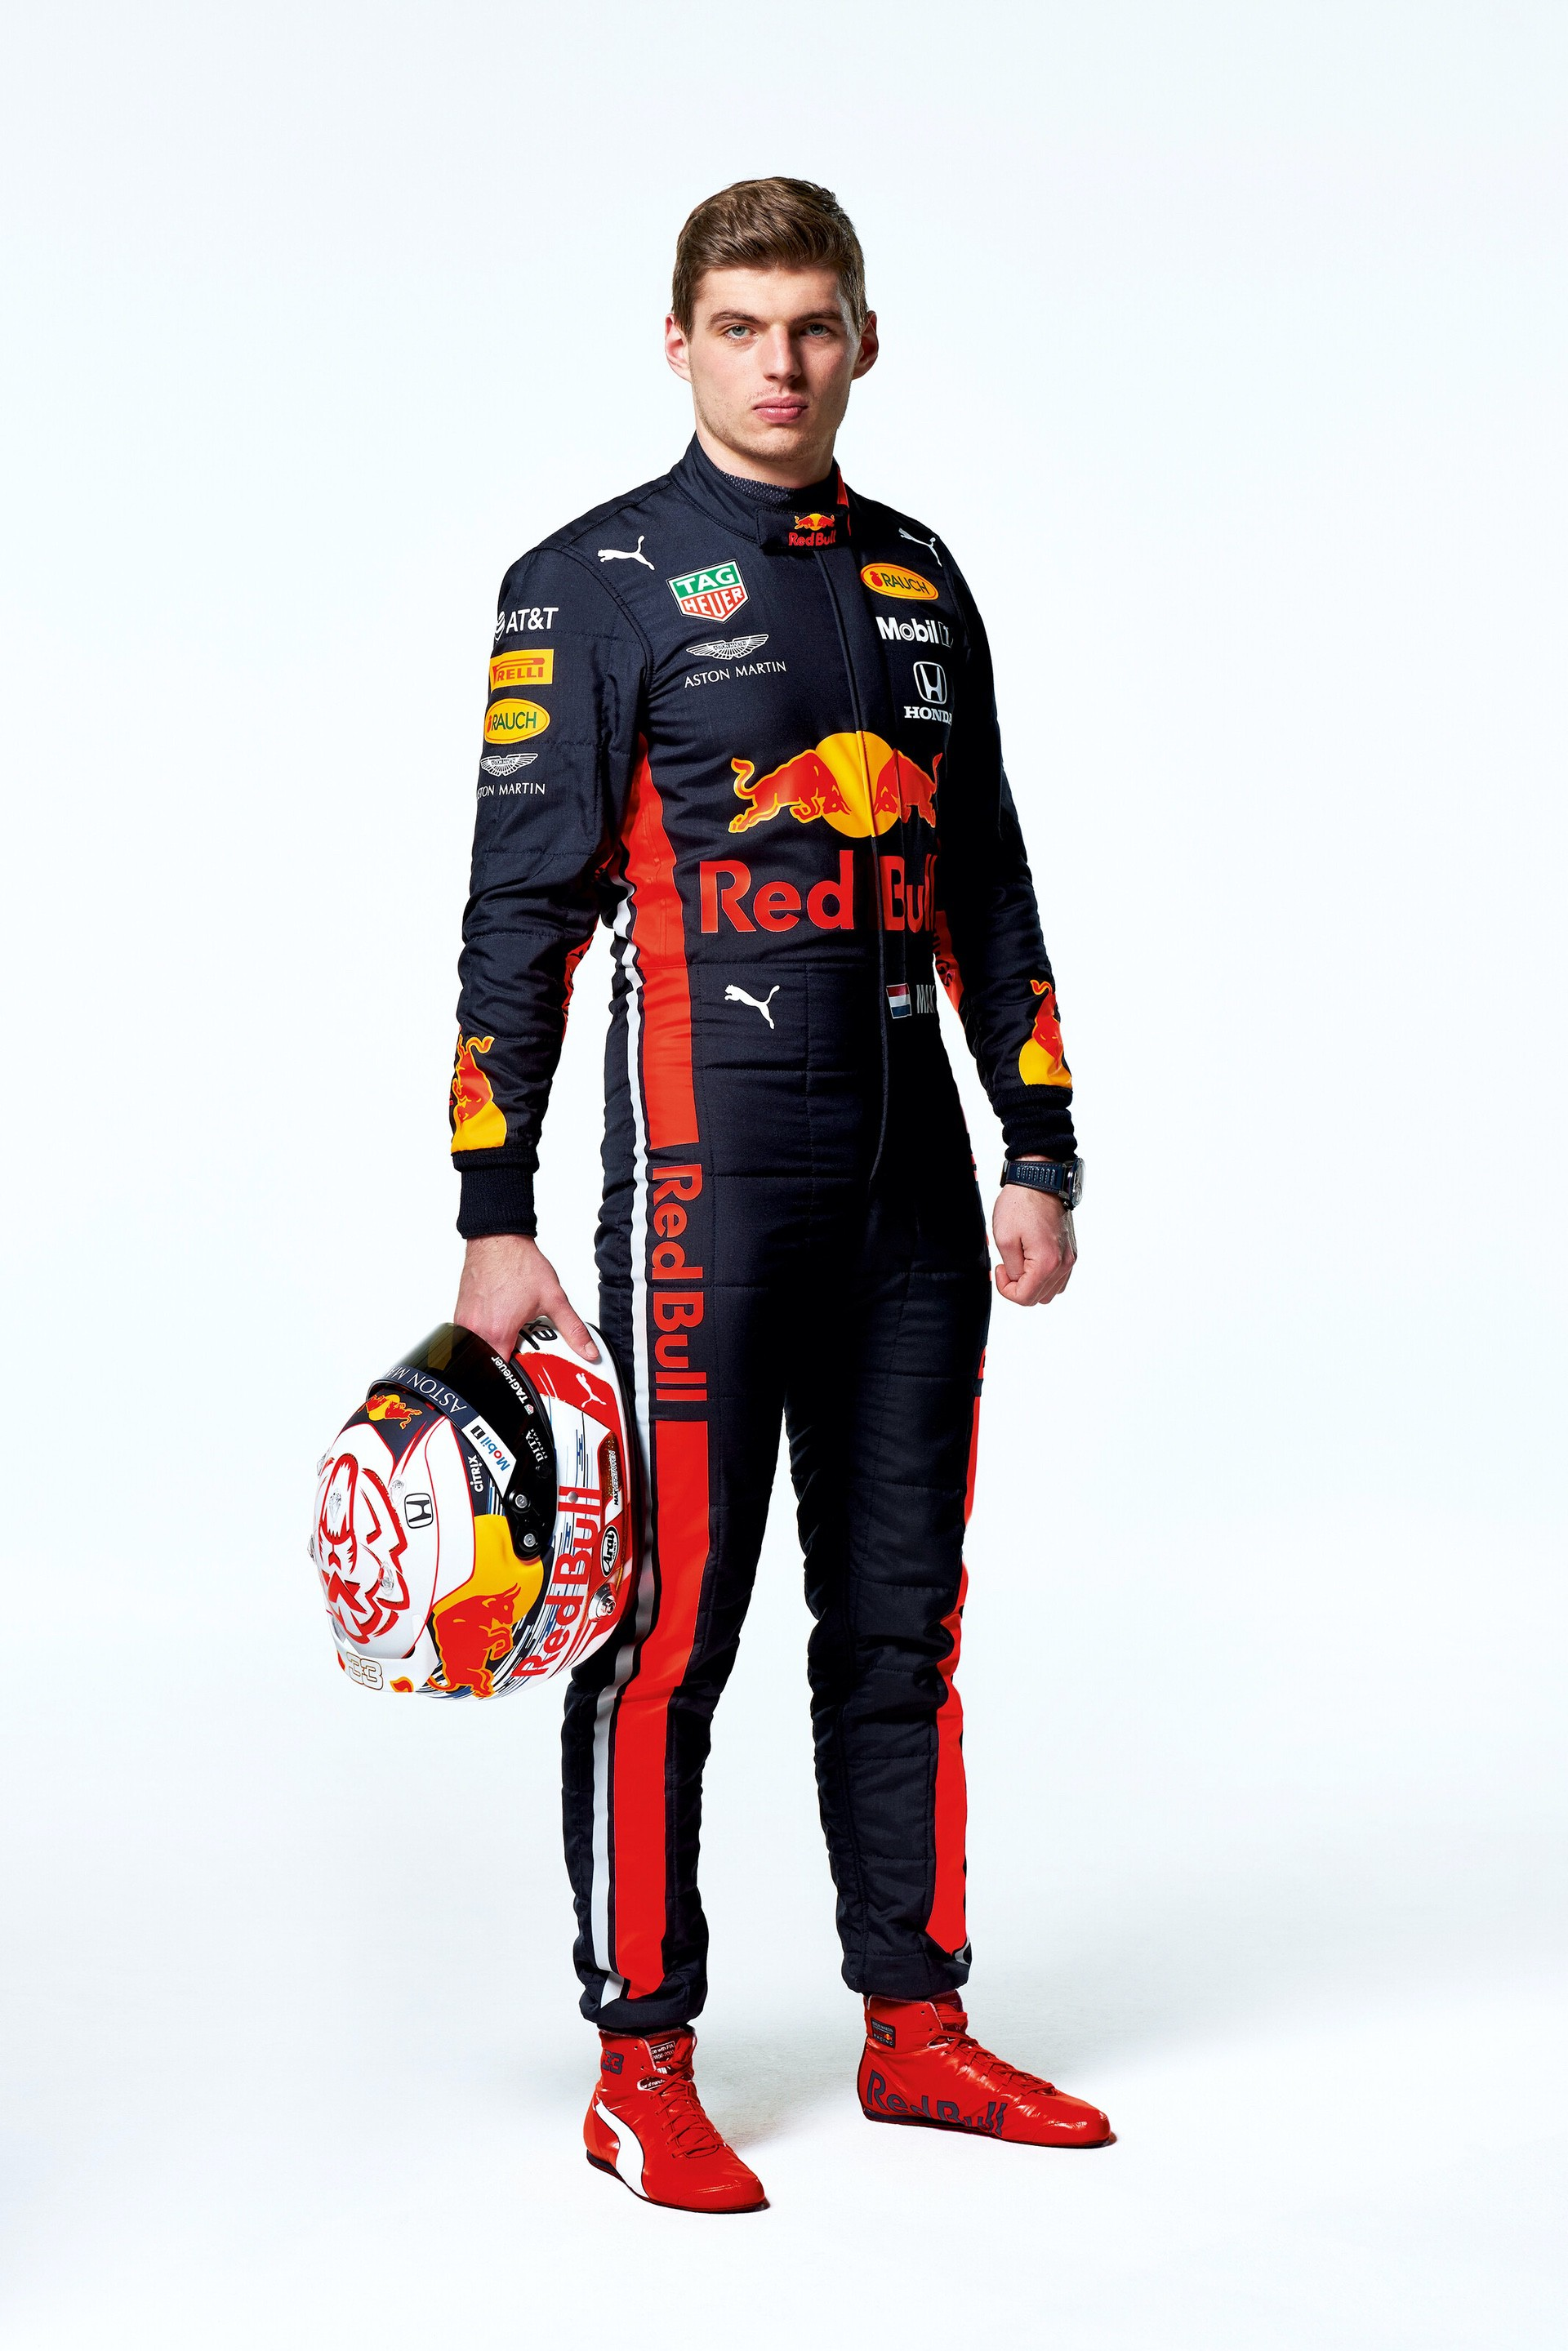 Max Verstappen seen during the Red Bull Racing 2019 Studio Shoot, February 2019, United Kingdom // Dustin Snipes/Red Bull Content Pool // AP-1YFPFH8NS1W11 // Usage for editorial use only // Please go to www.redbullcontentpool.com for further information. //